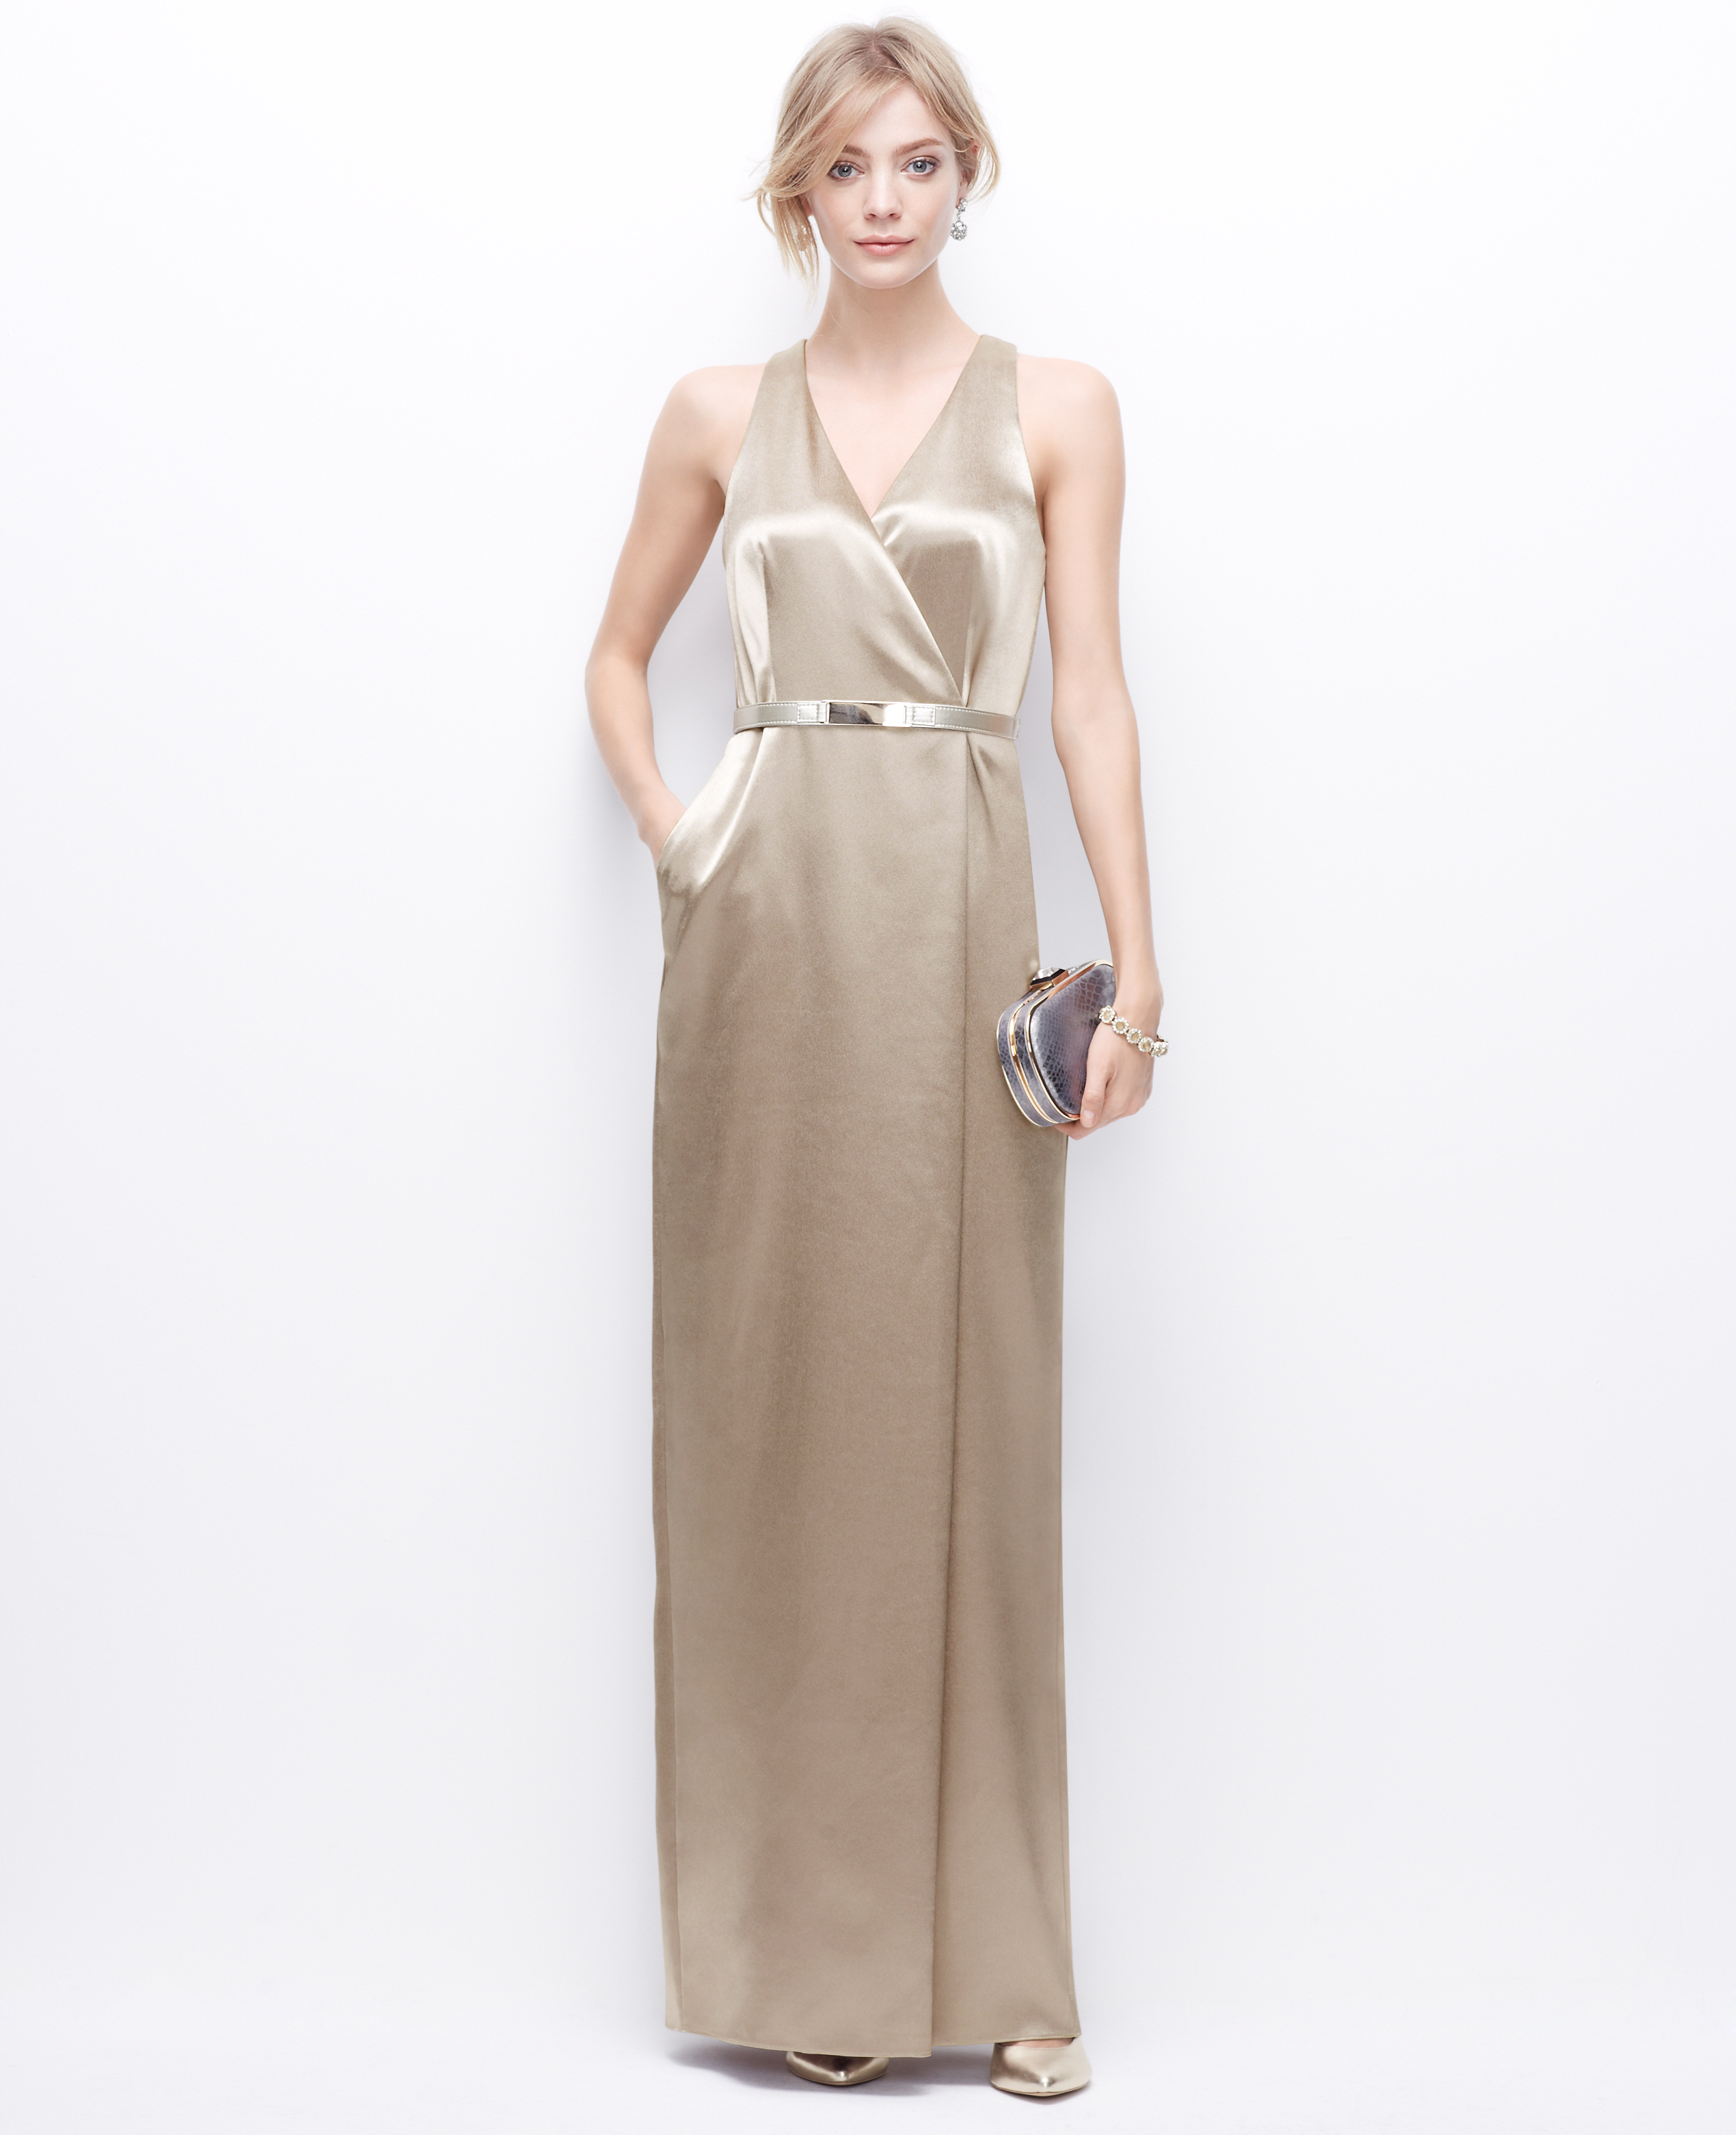 Lyst - Ann Taylor Petite Satin V-Neck Gown in Metallic